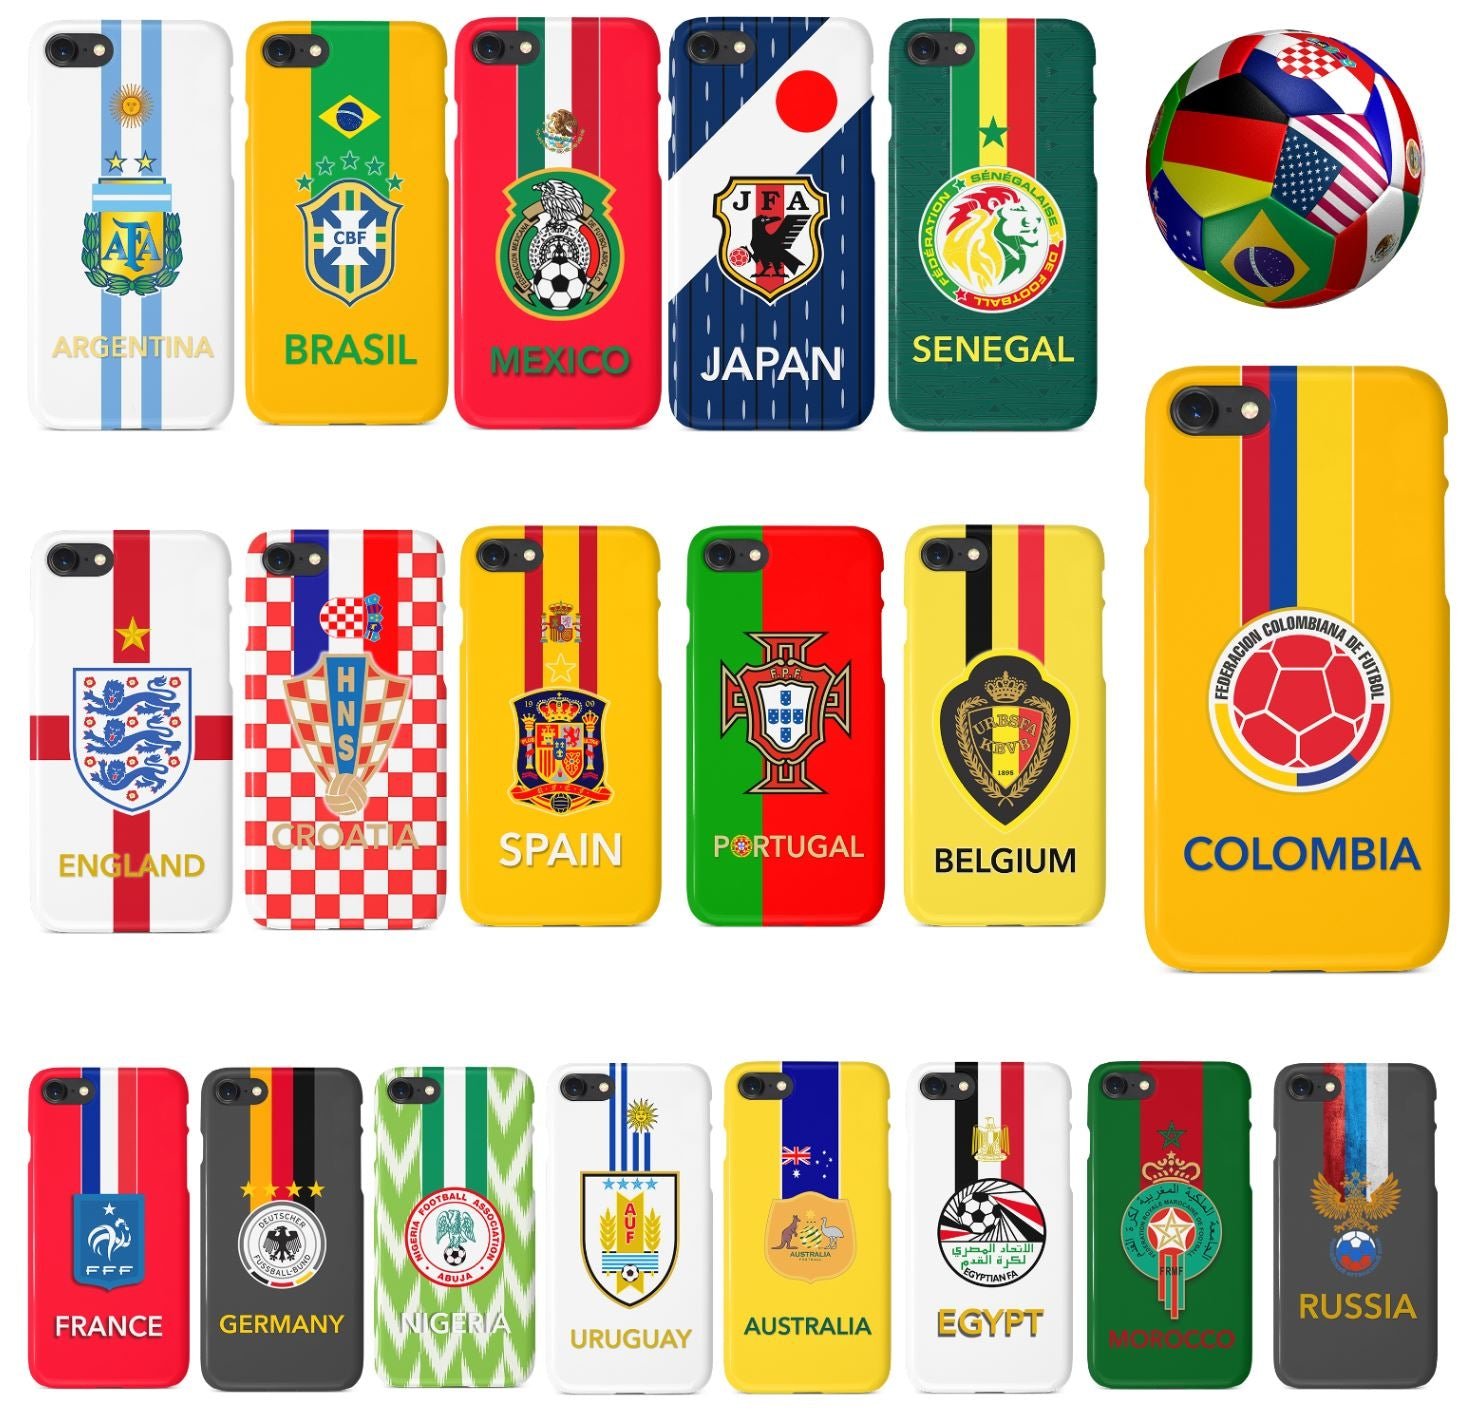 Fifa 2018 World Cup Countries iPhone Case – Spot of Offers